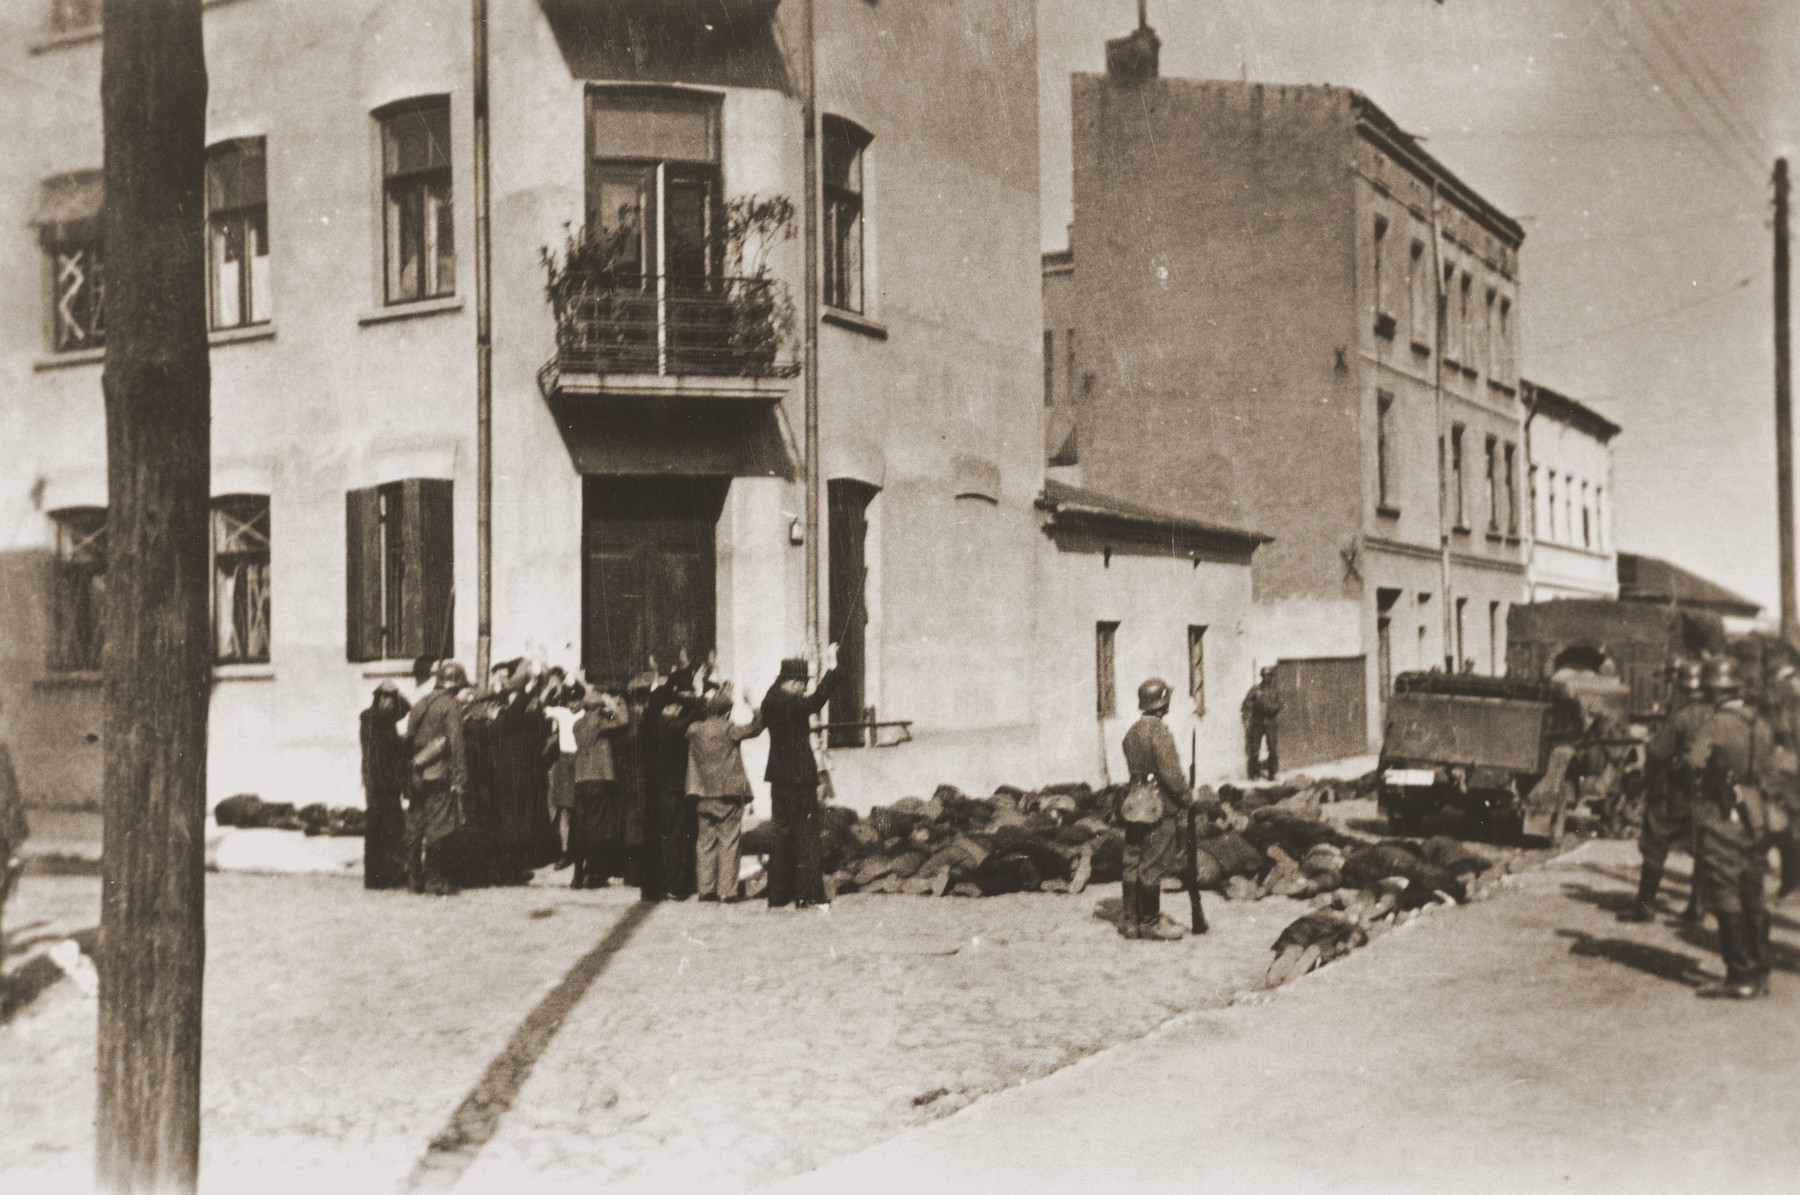 A group of Jewish men, who have been rounded-up by German soldiers, await execution on a street in Czestochowa.  In front of them lie the corpses of those who were shot earlier.  One photograph from an album belonging to a member of a Wehrmacht machine gunners' unit, which was found after the war by Lorenzo Hawkins (the donor's grandfather), an American serviceman in Company B, 56th Armored Engineer Battalion.